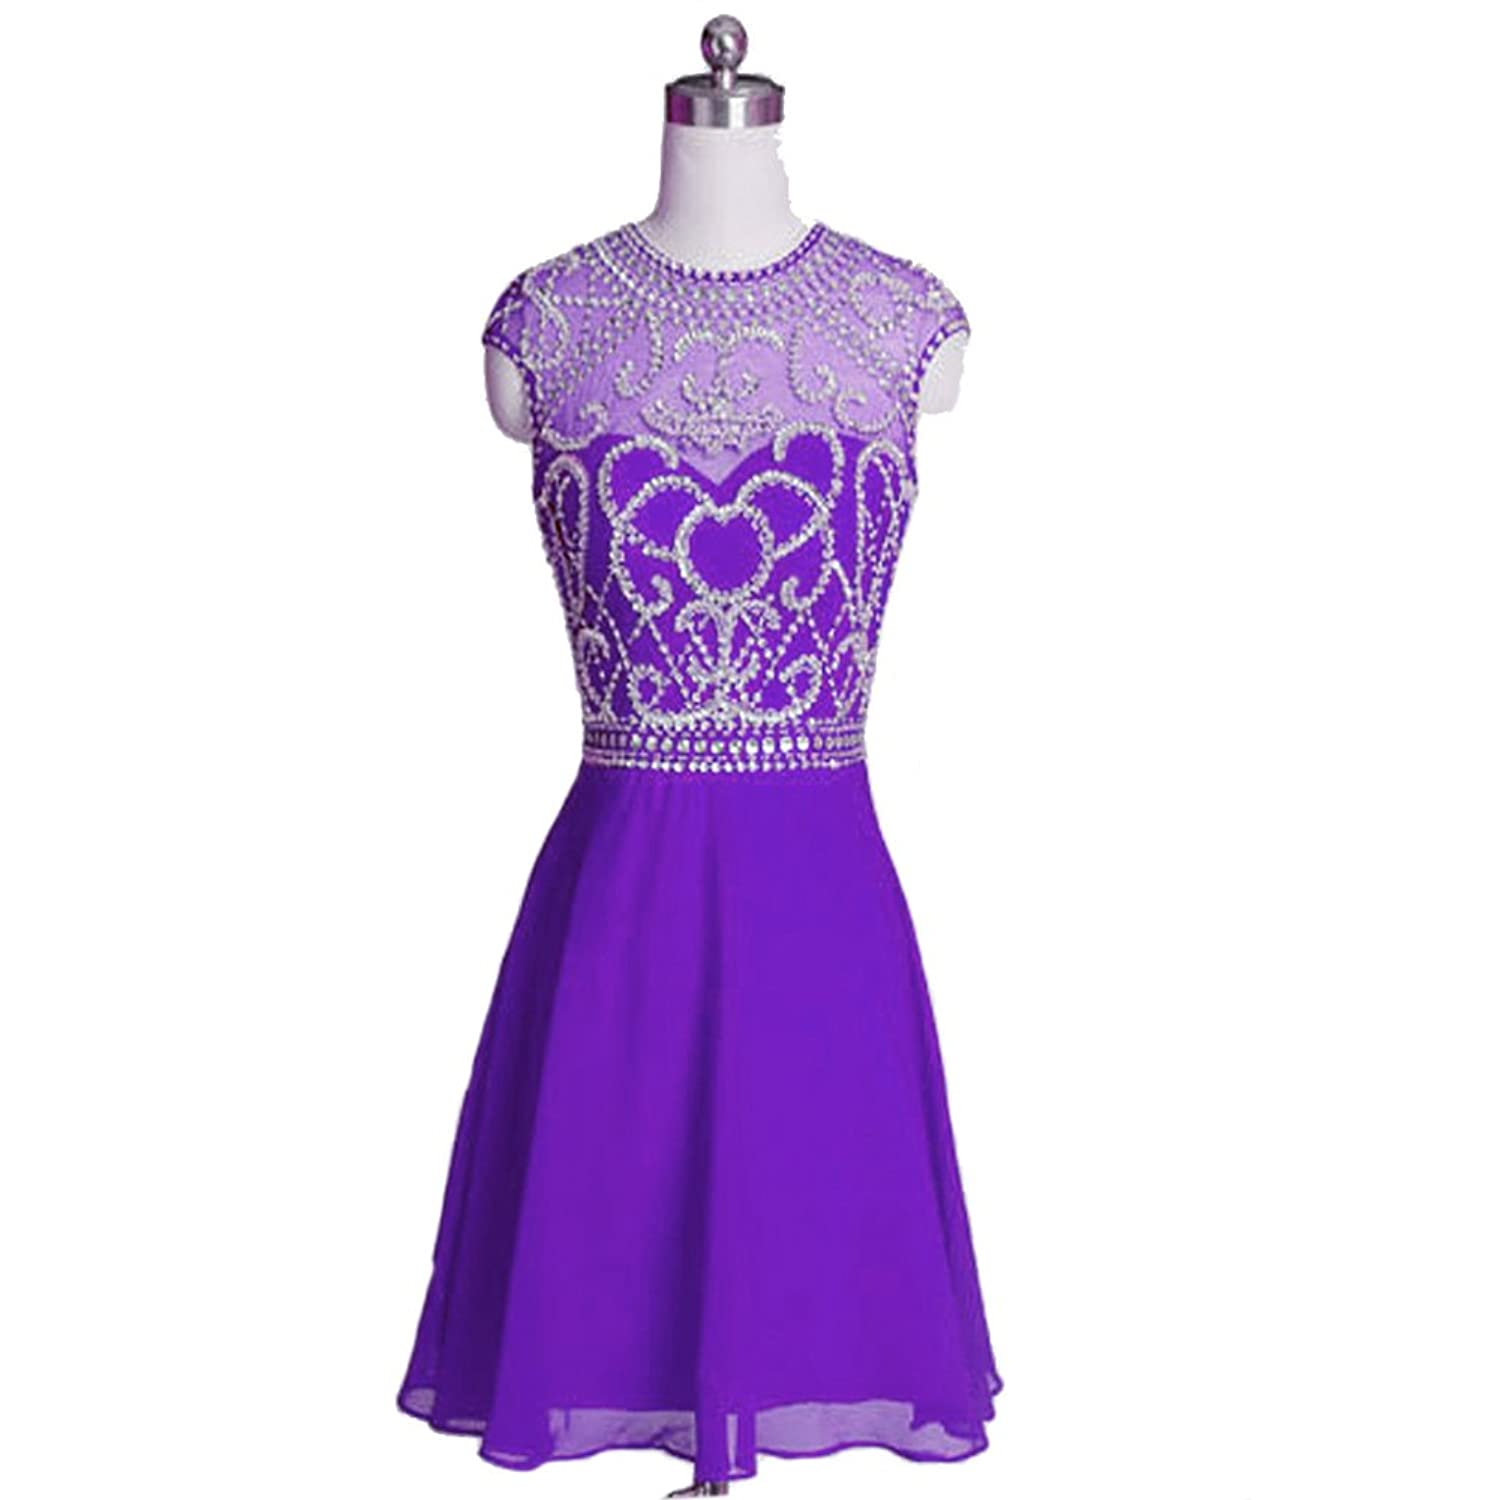 Uryouthstyle Beaded Cap Sleeve Prom Dresses Short Chiffon Party Gowns